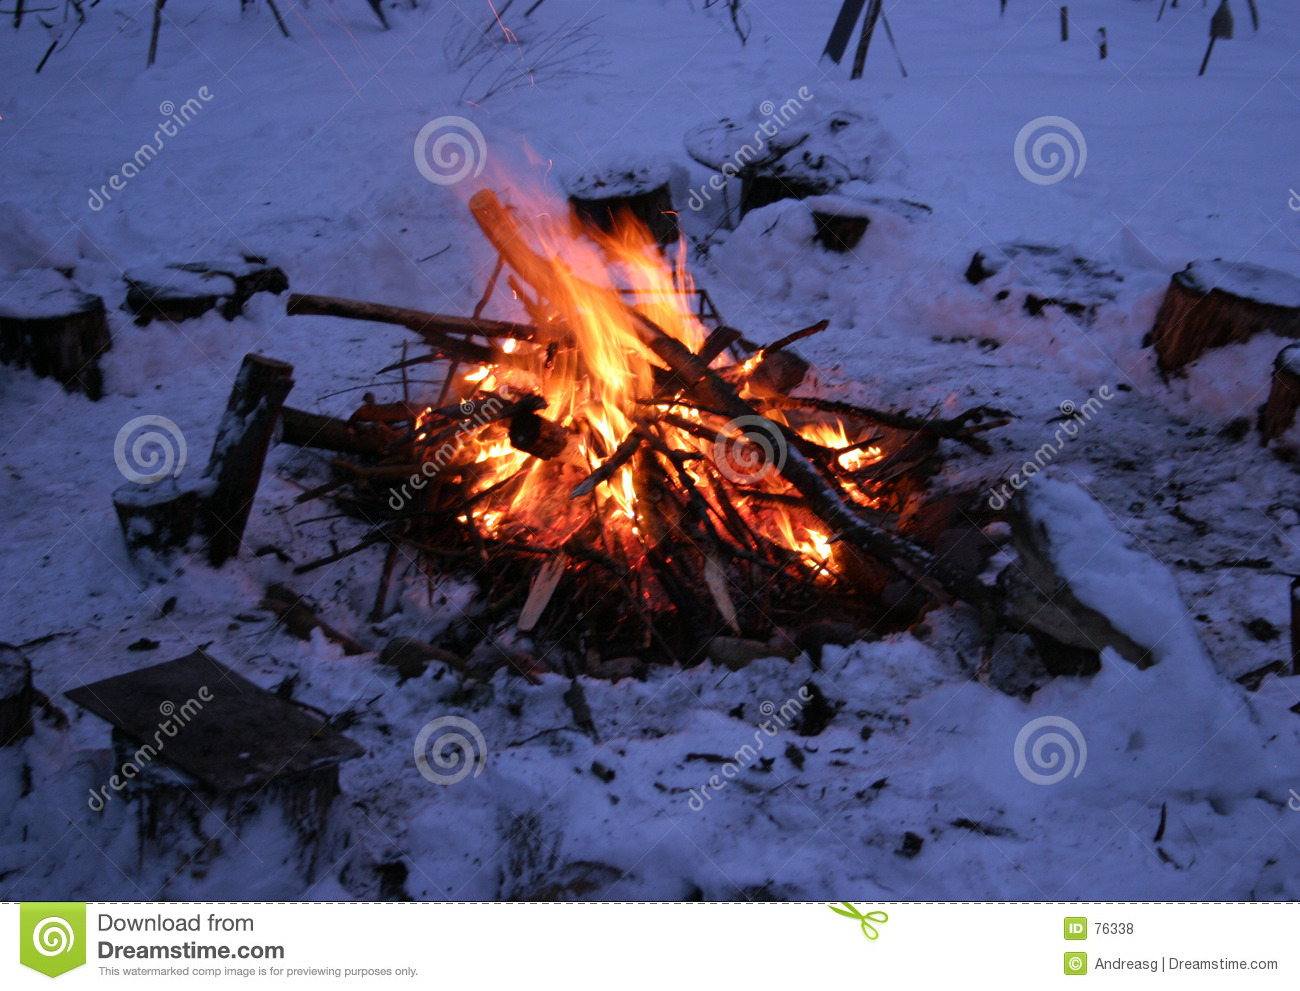 winter camp fire royalty free stock photos image 76338. Black Bedroom Furniture Sets. Home Design Ideas